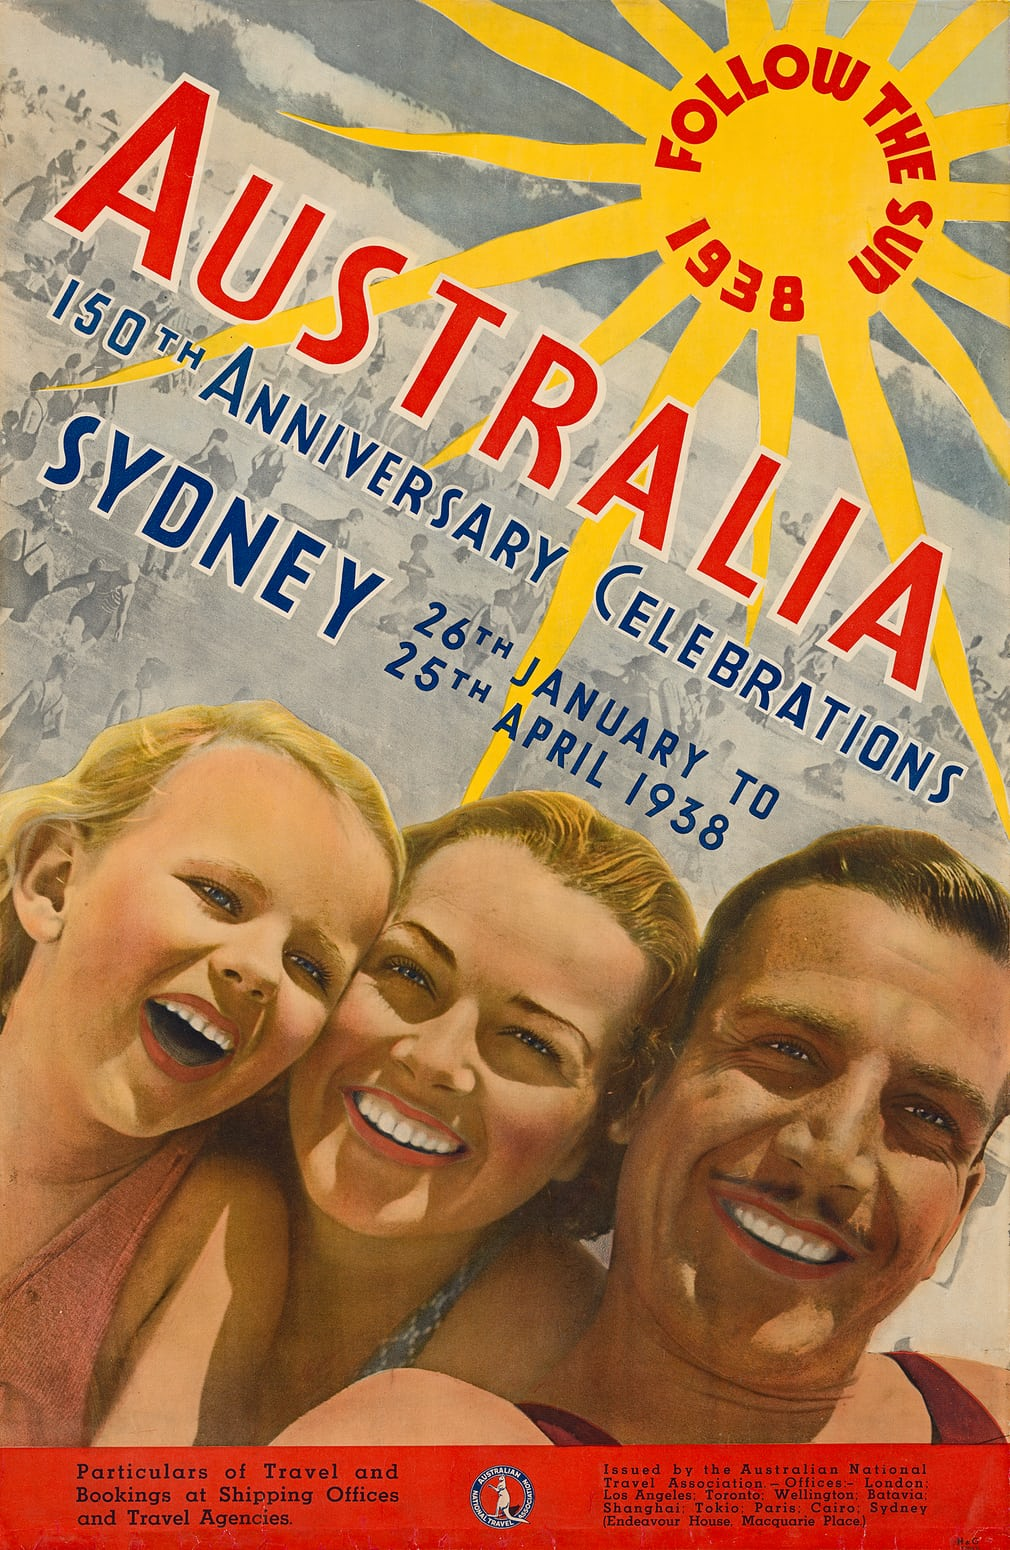 1930s Australia: the art deco designs ushering in a brave new world – in pictures